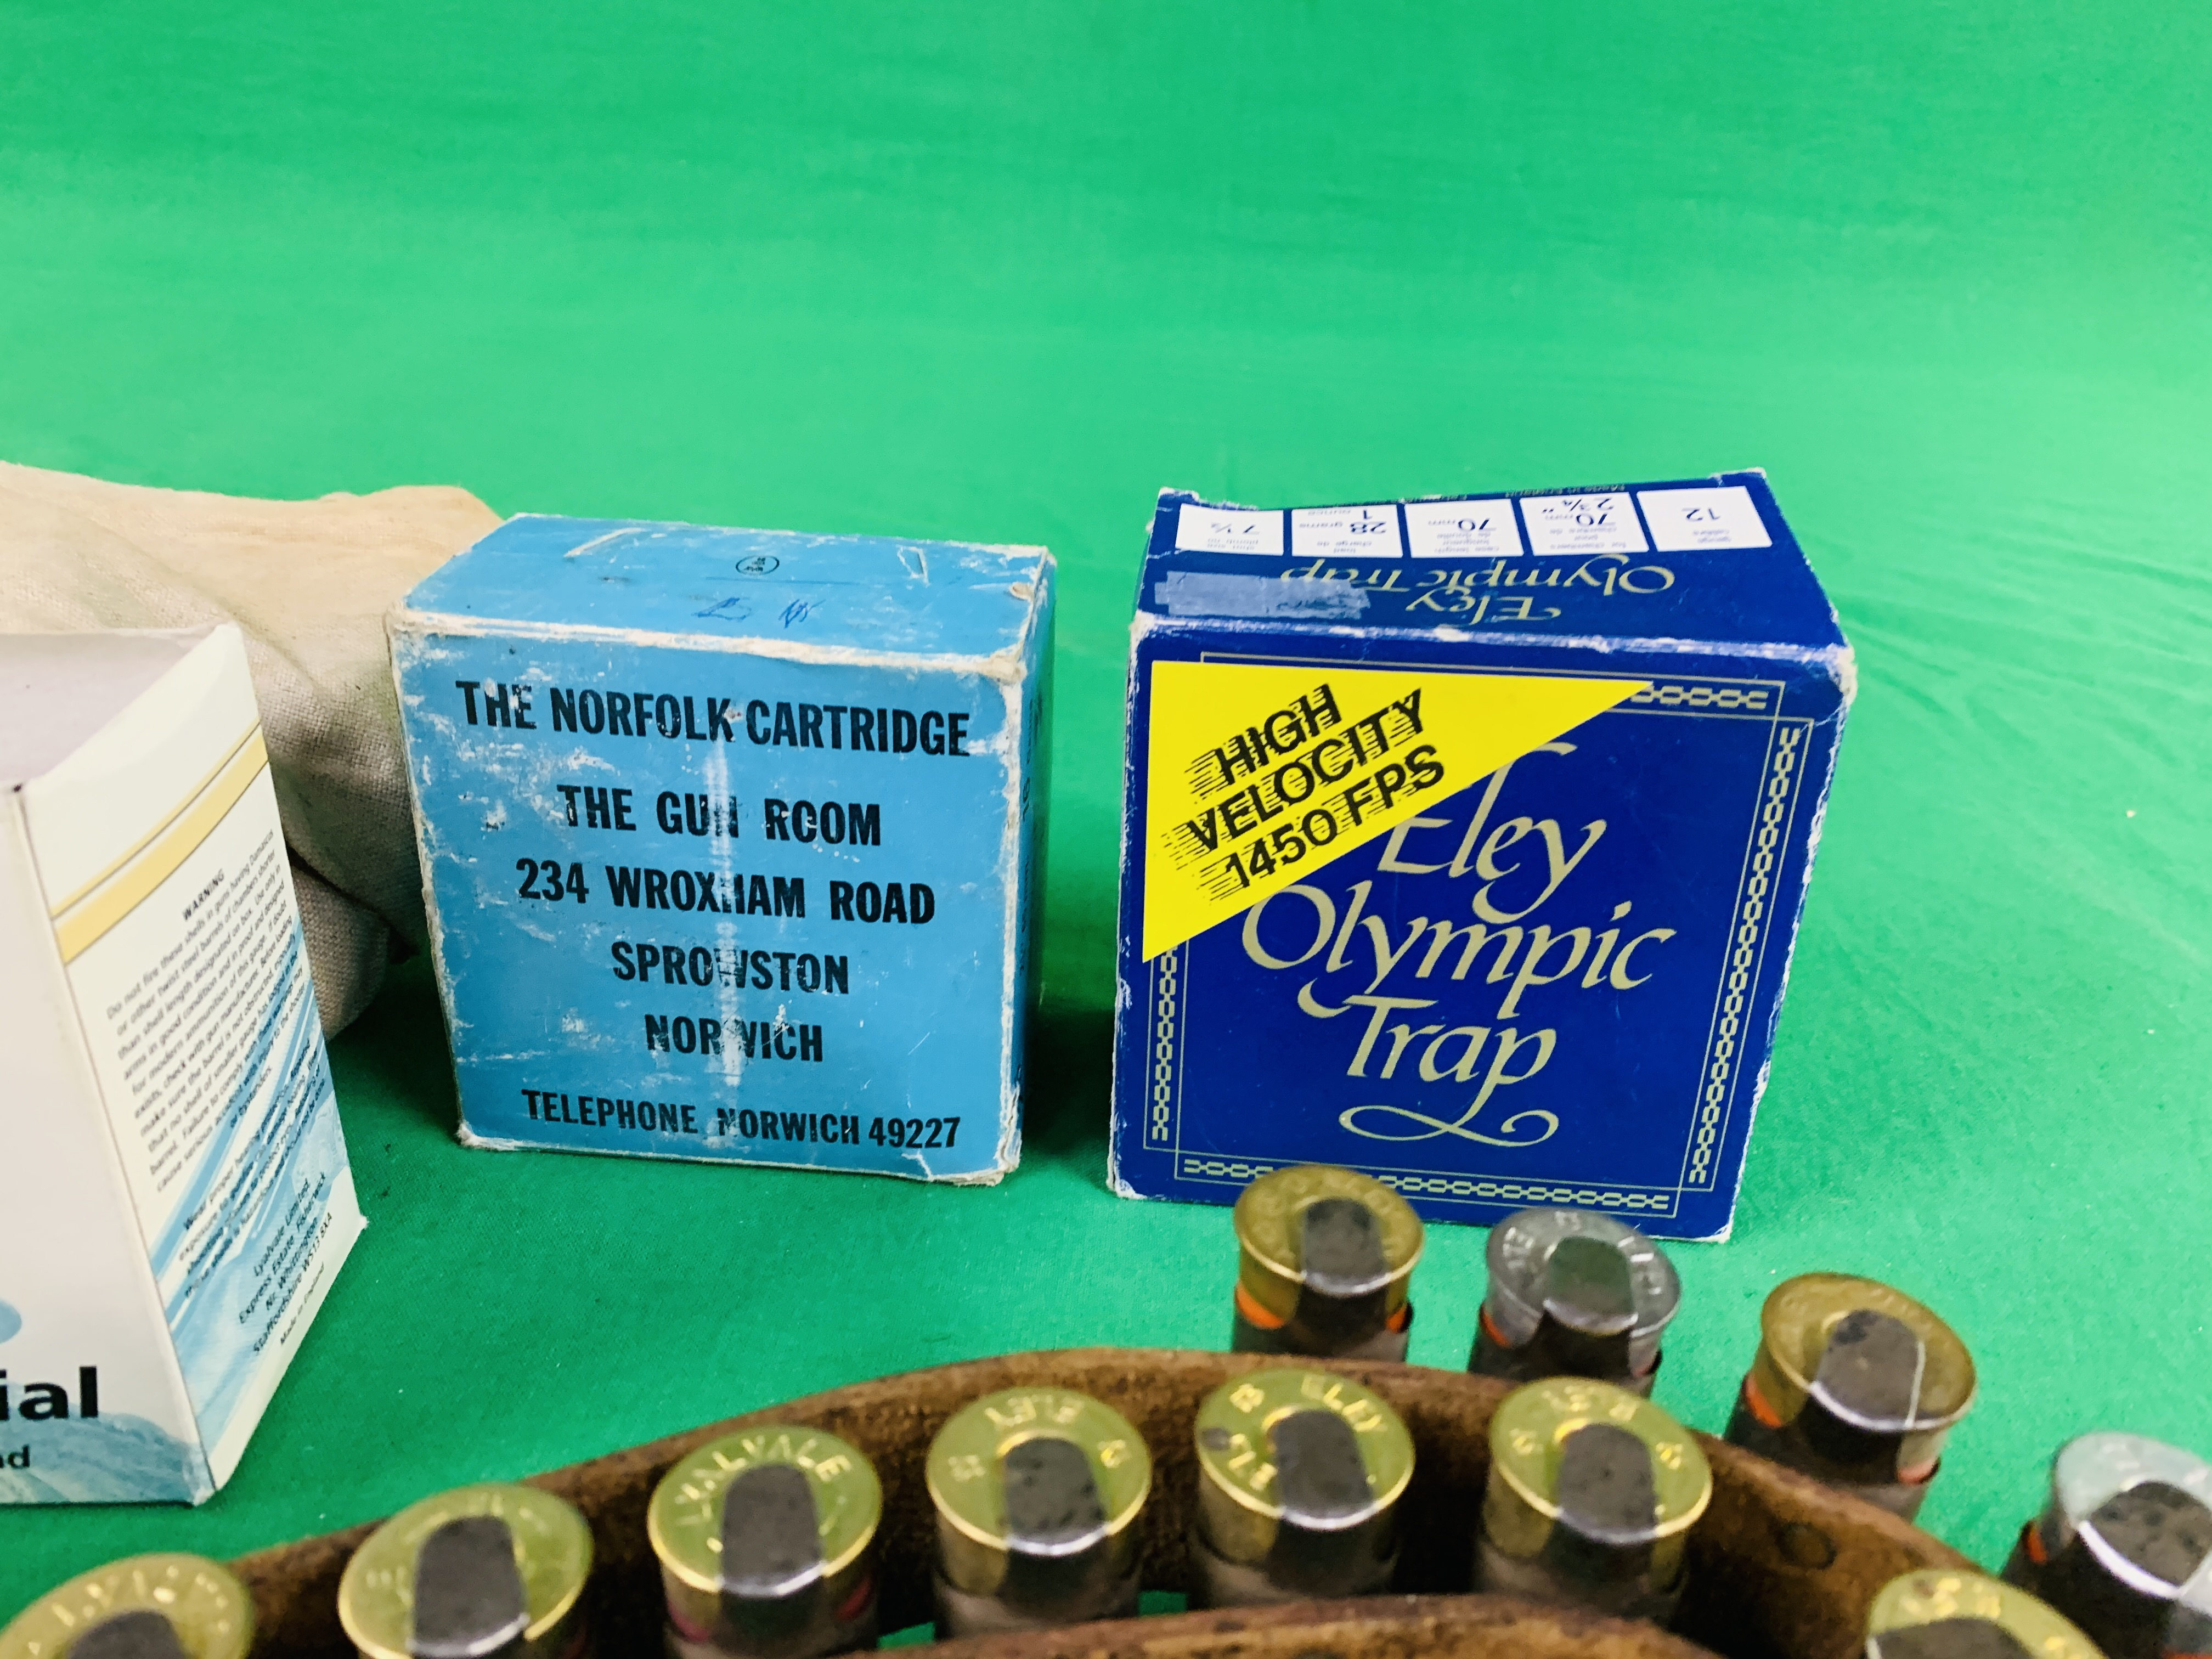 A COLLECTION OF SHOTGUN AMMUNITION TO INCLUDE 12G, .22 BIRD SHOT, . - Image 4 of 6